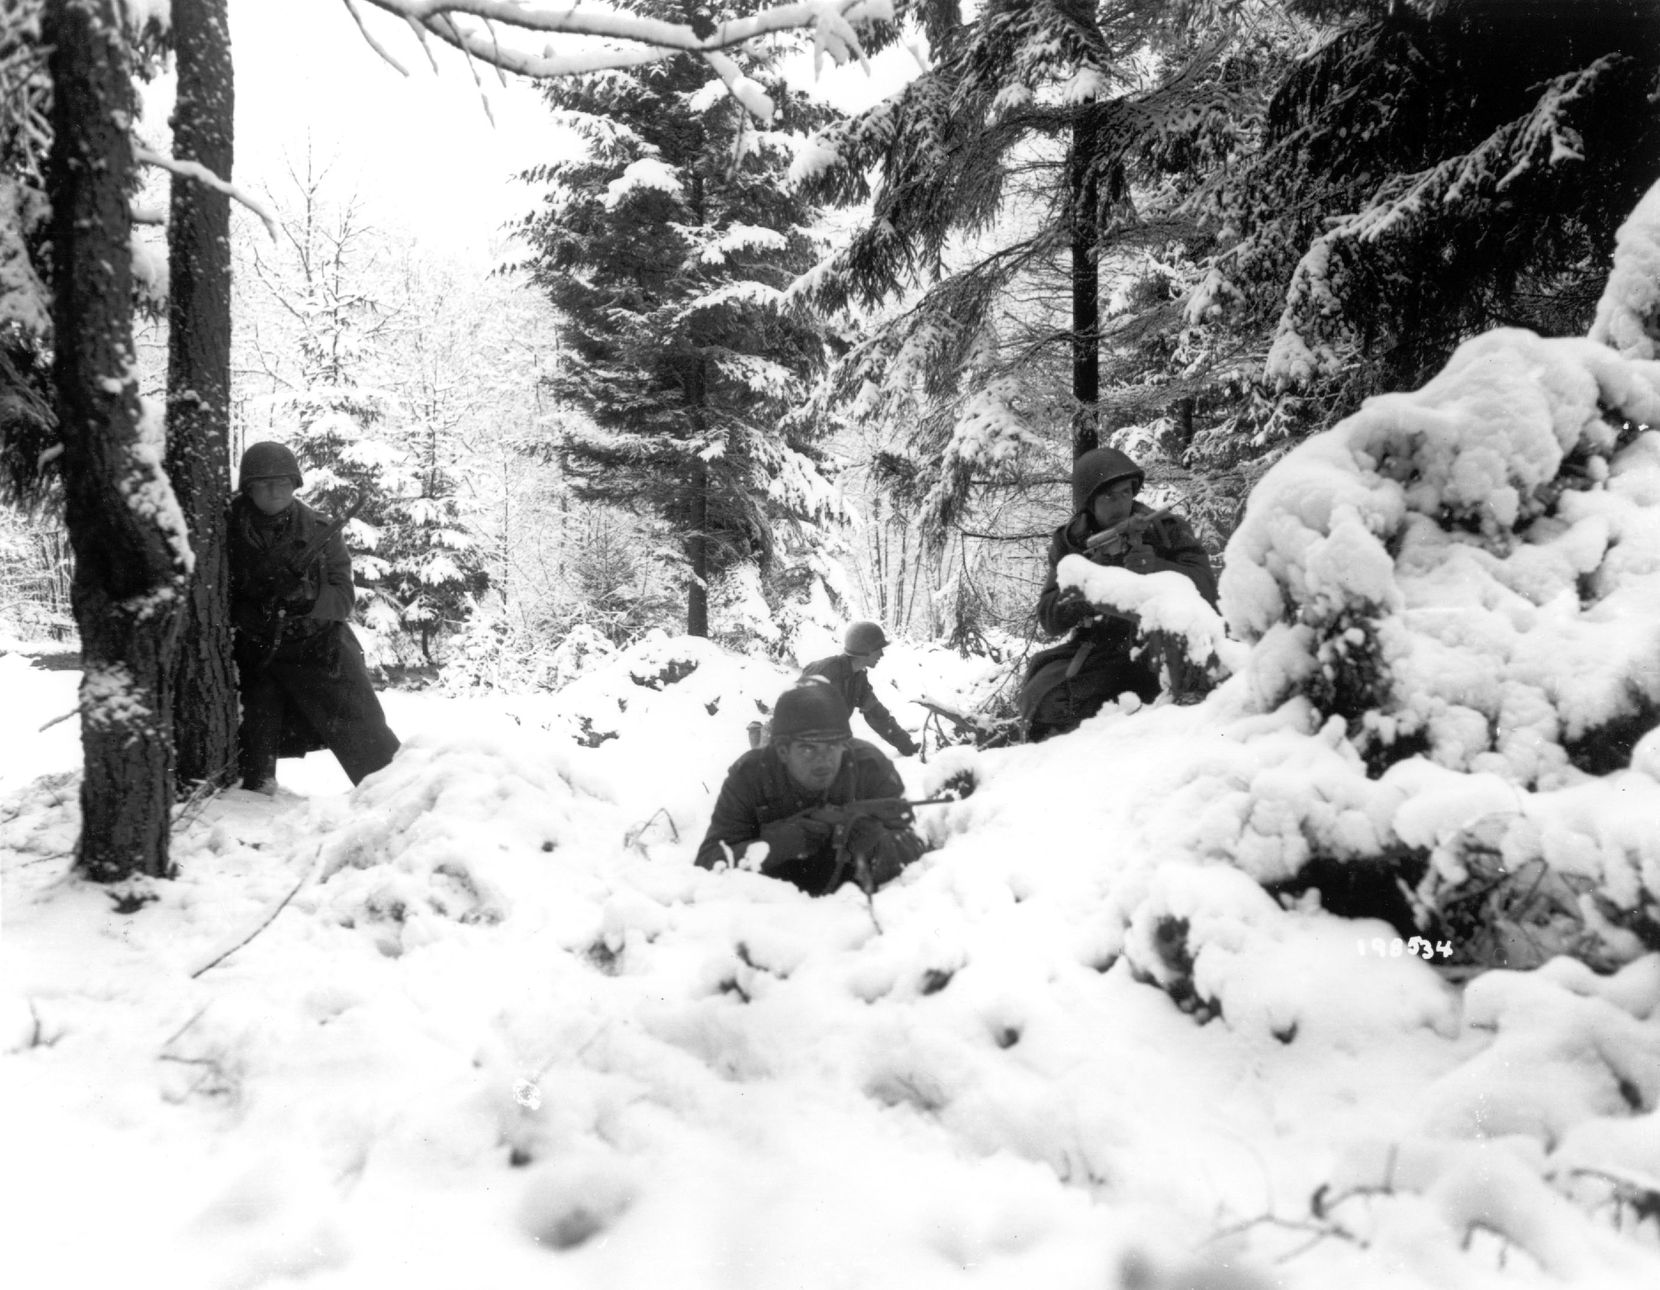 American infantrymen of the 290th Regiment move through fresh snowfall as they advance against German troops in a forest near Amonines, Belgium, on January 4, 1945.